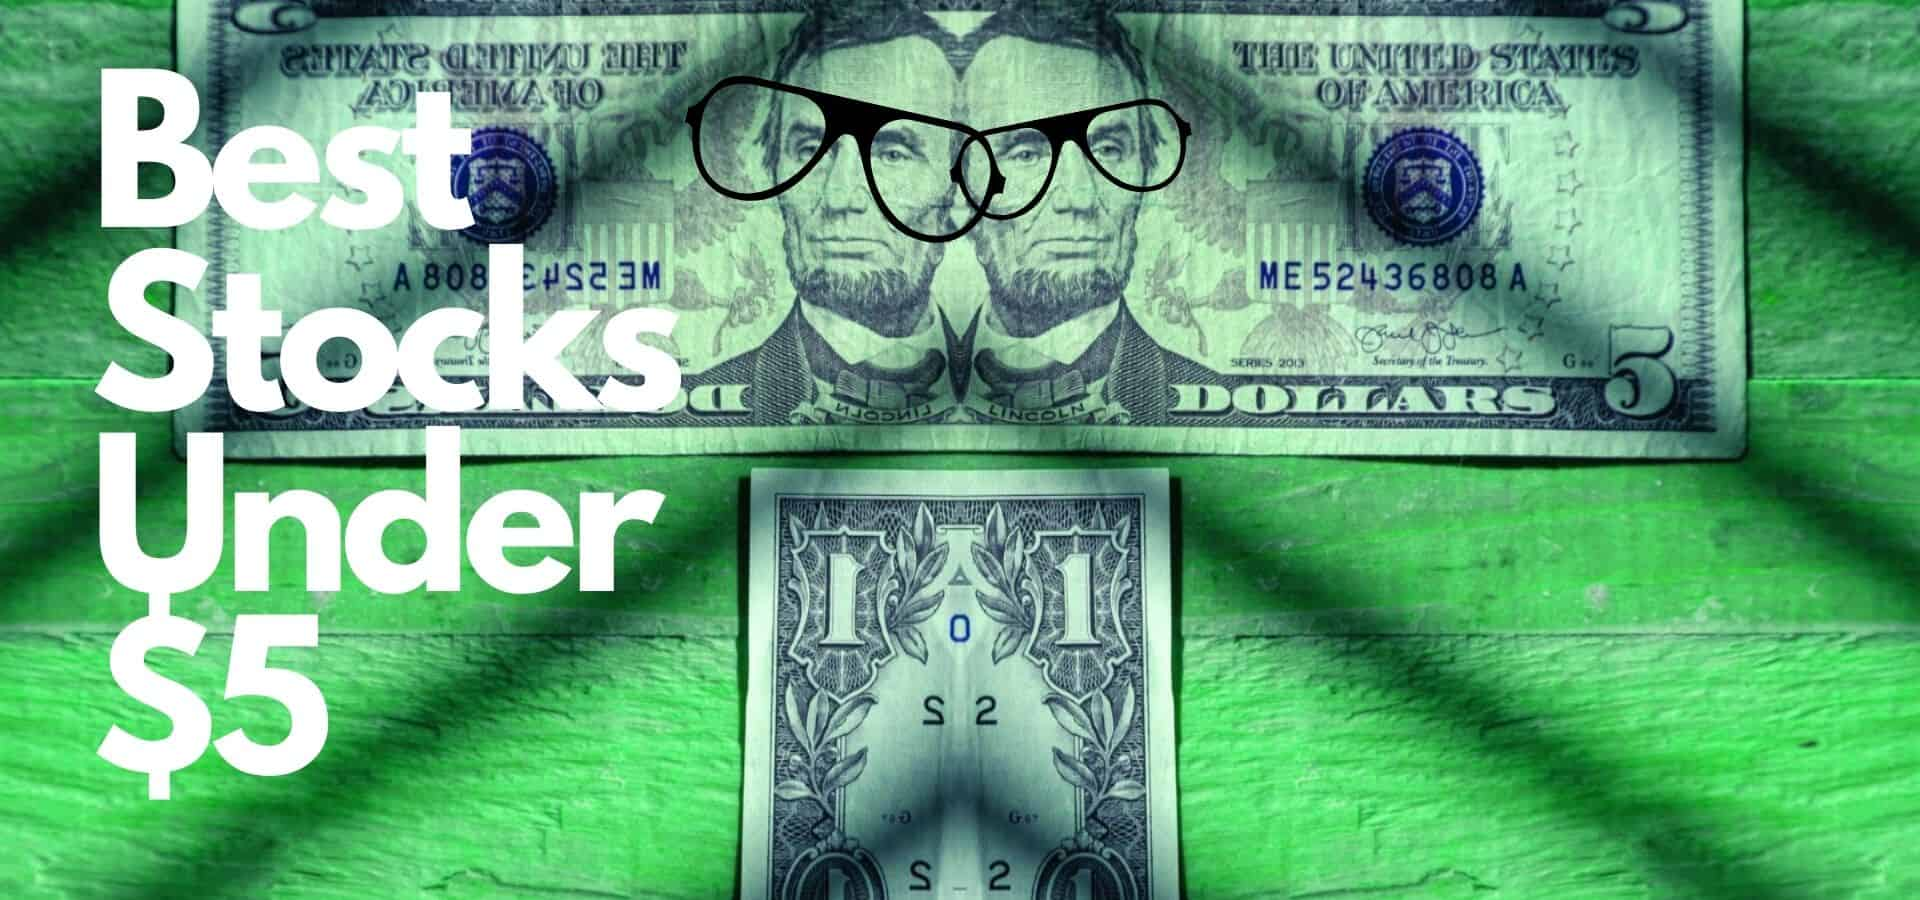 11 Of The Best Stocks Under $5 To Buy Right Now!